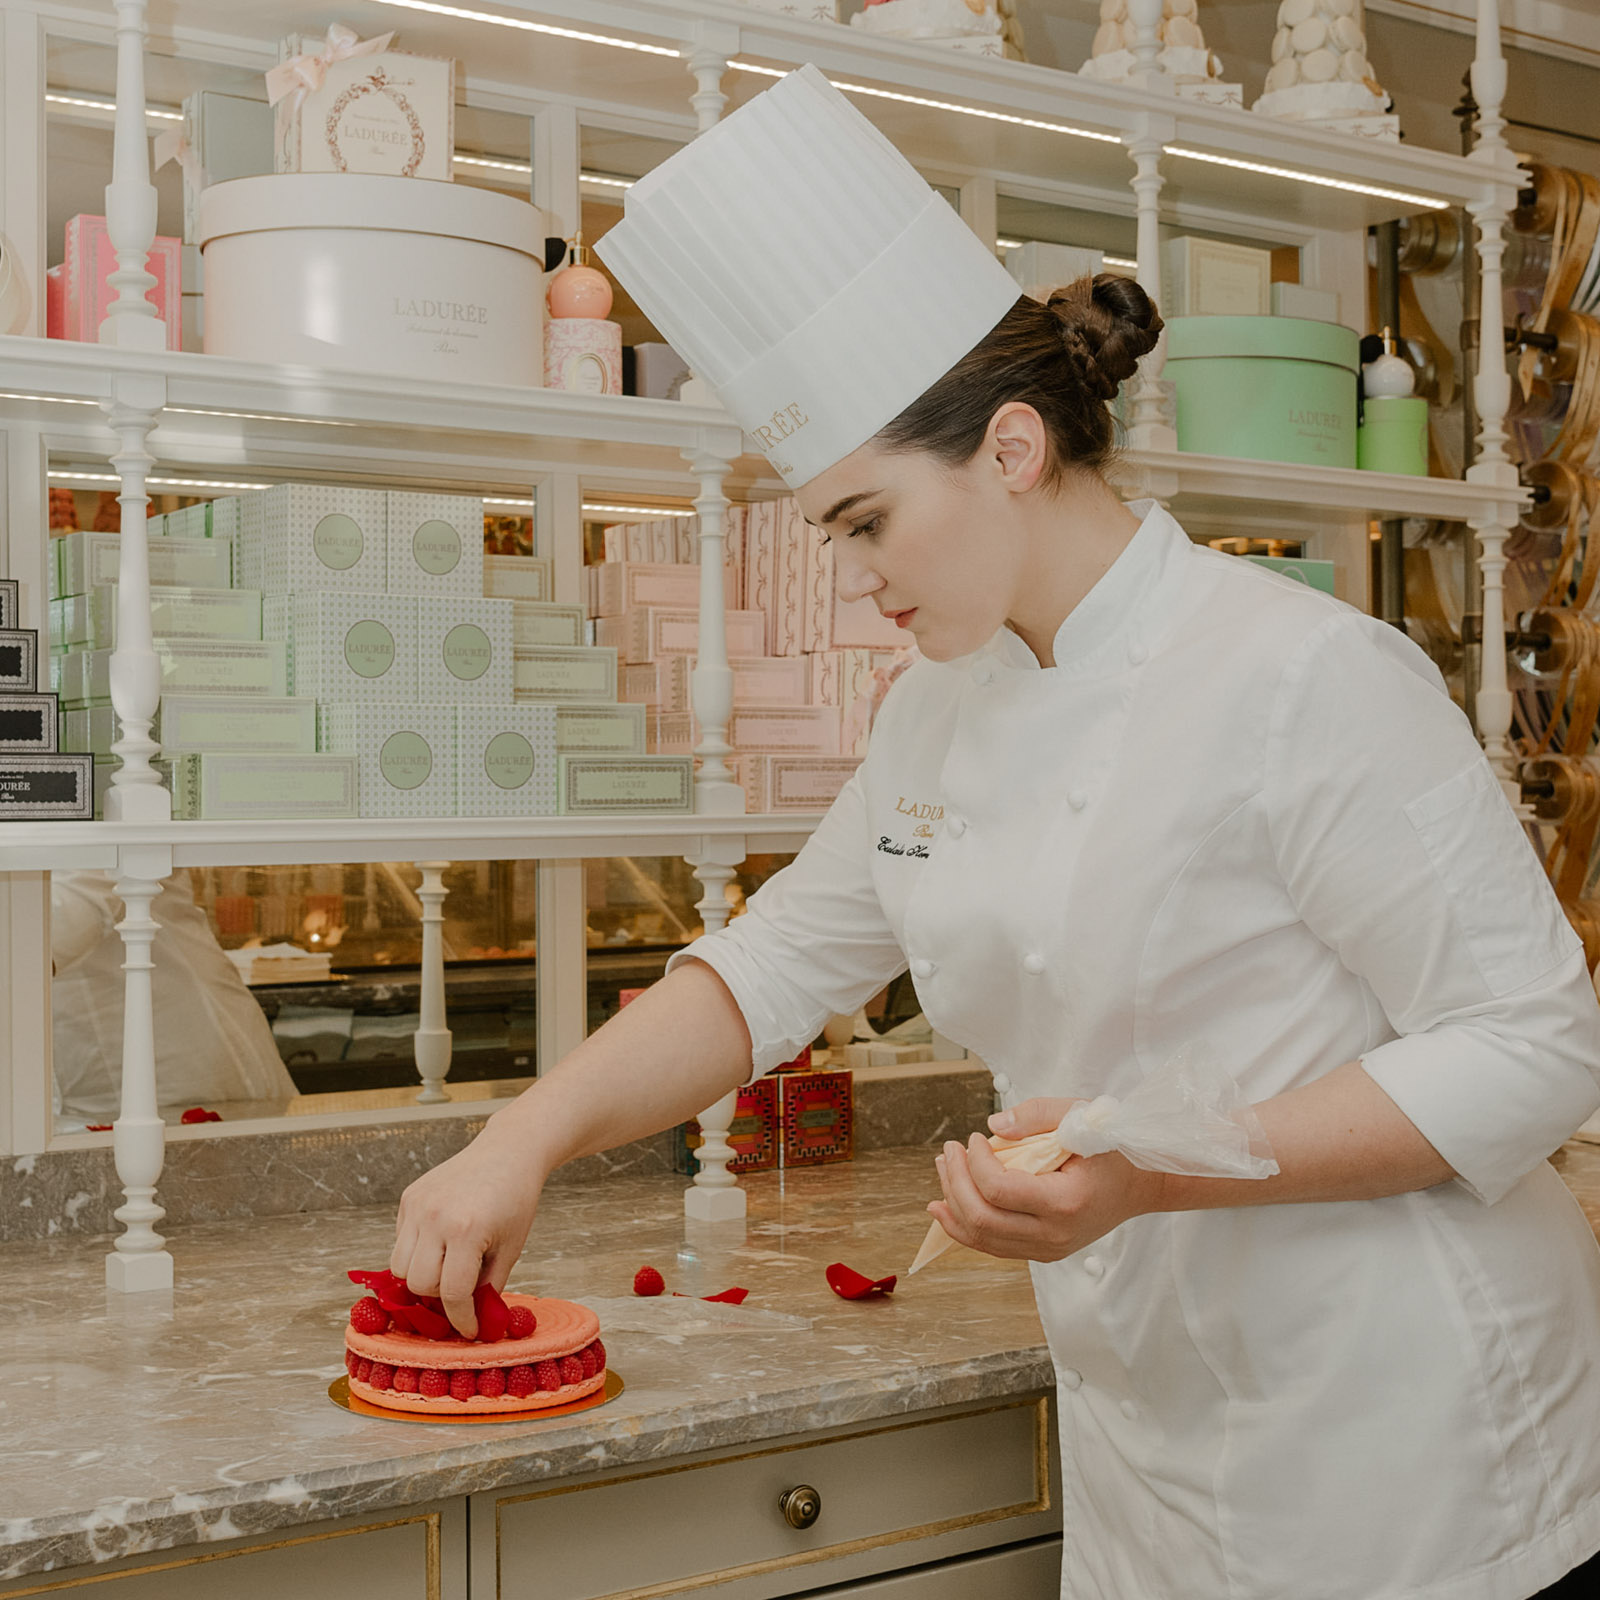 Techniques and Secrets from Master Pastry Chefs